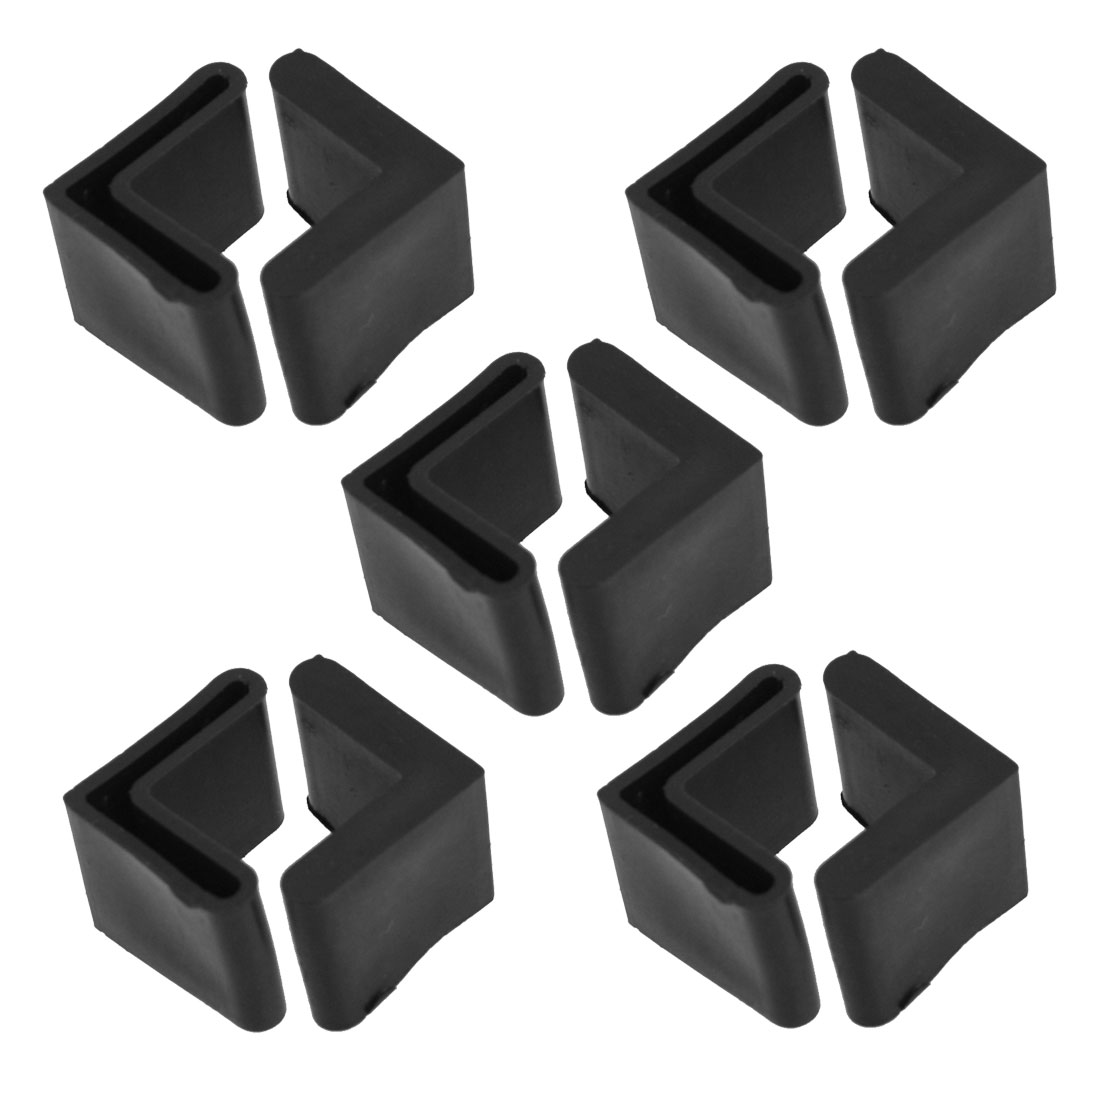 "10 Pcs L Shaped 0.94"" x 0.94"" Angle Iron Foot Pads Black Rubber Covers"